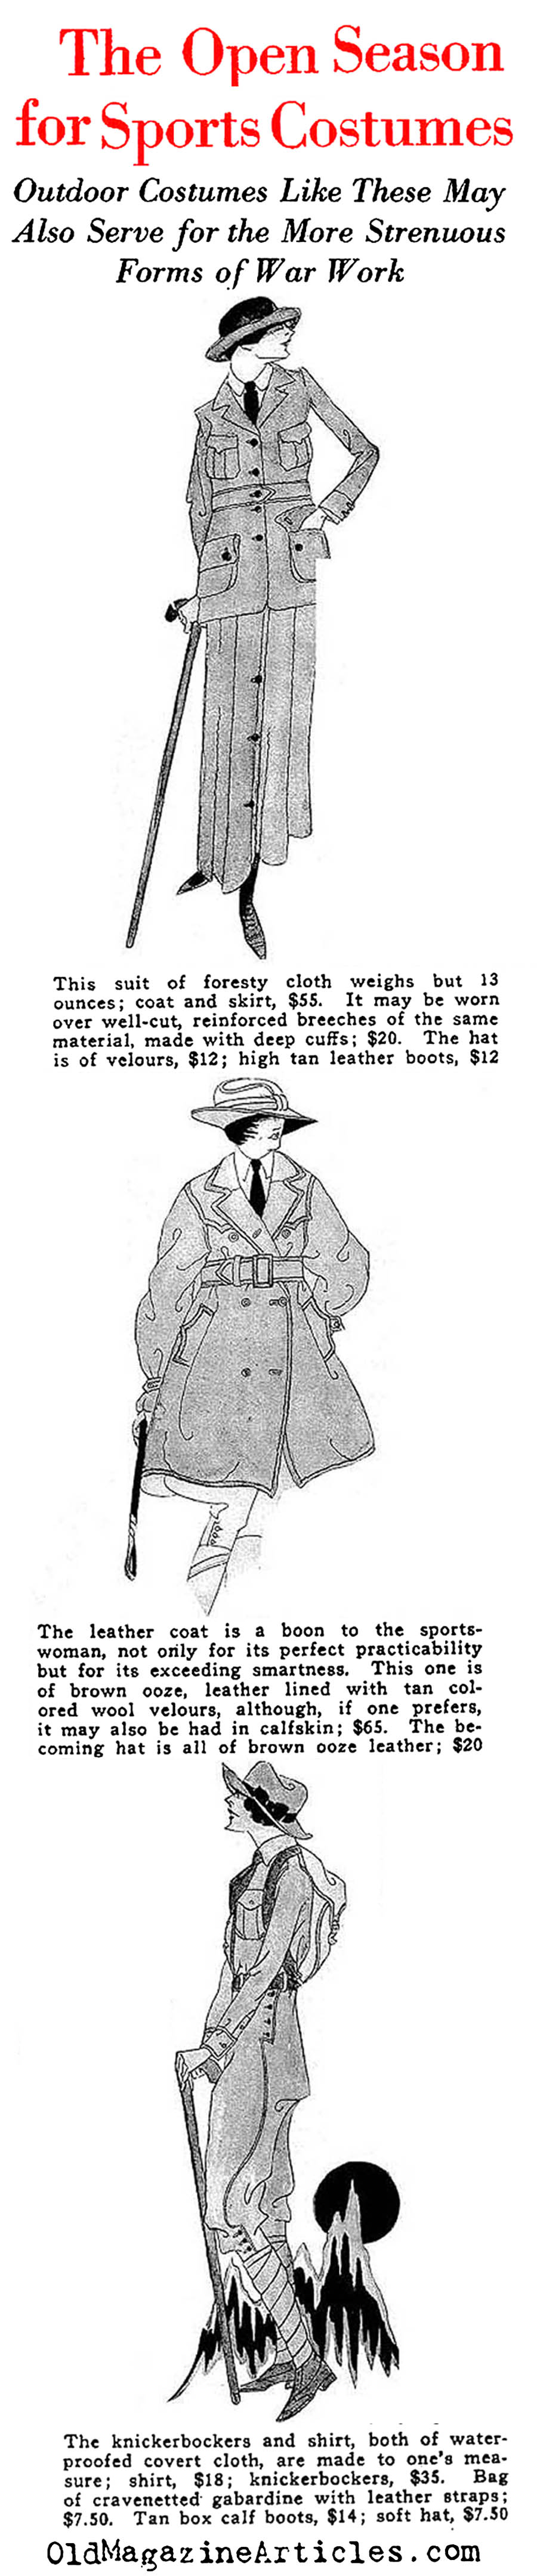 The Great War and It's Influence on Feminine Fashion   (Vanity Fair, 1918)